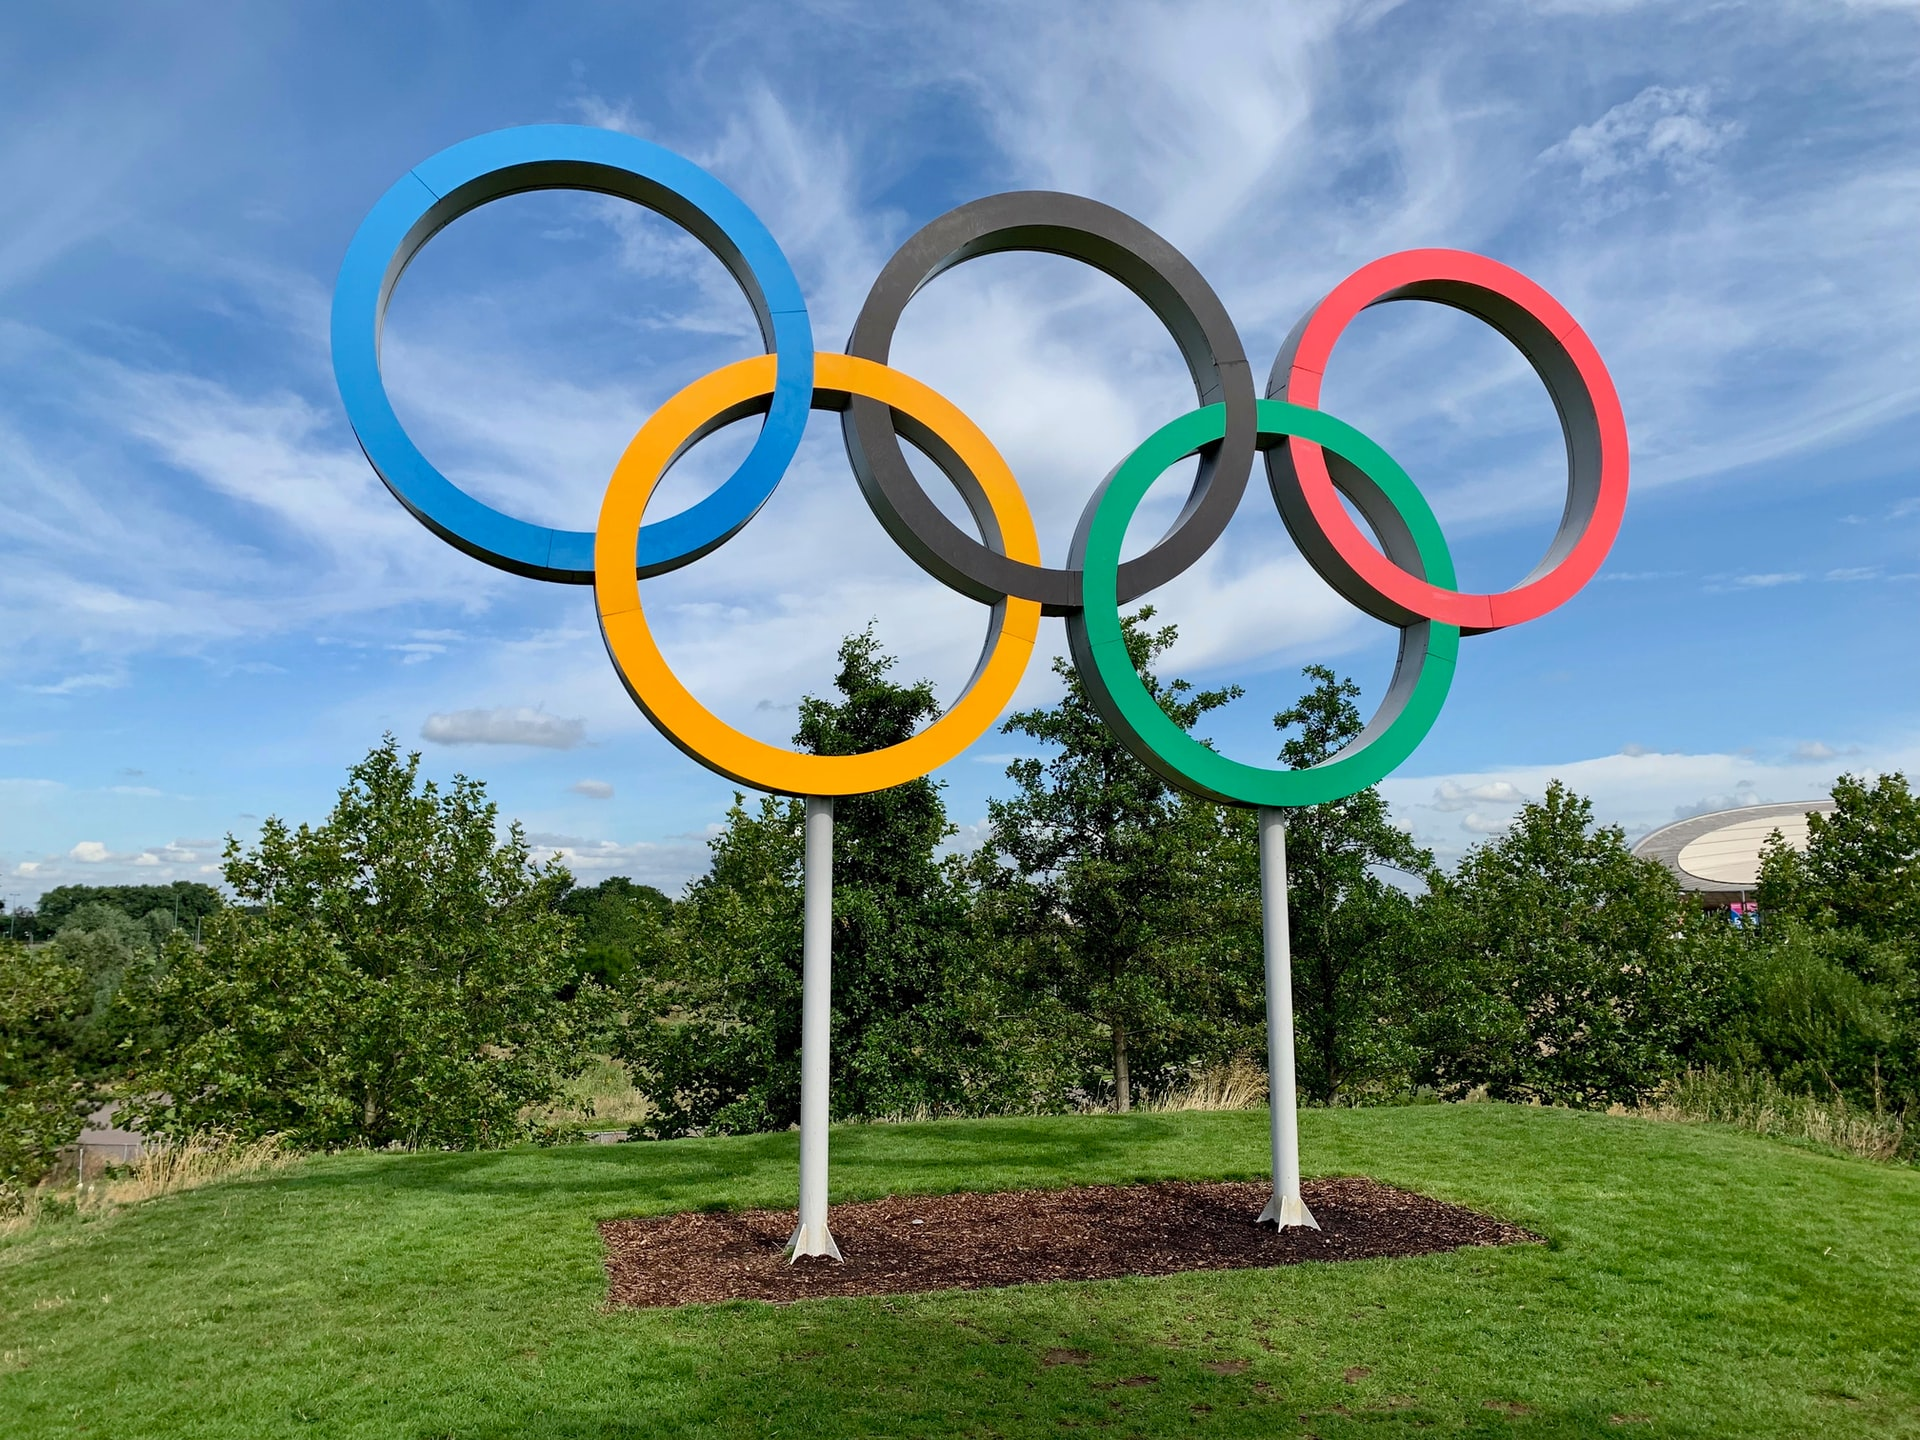 Sports Betting Looks to a Summertime Bounce From the Olympics, Autumn Kickoff in Arizona